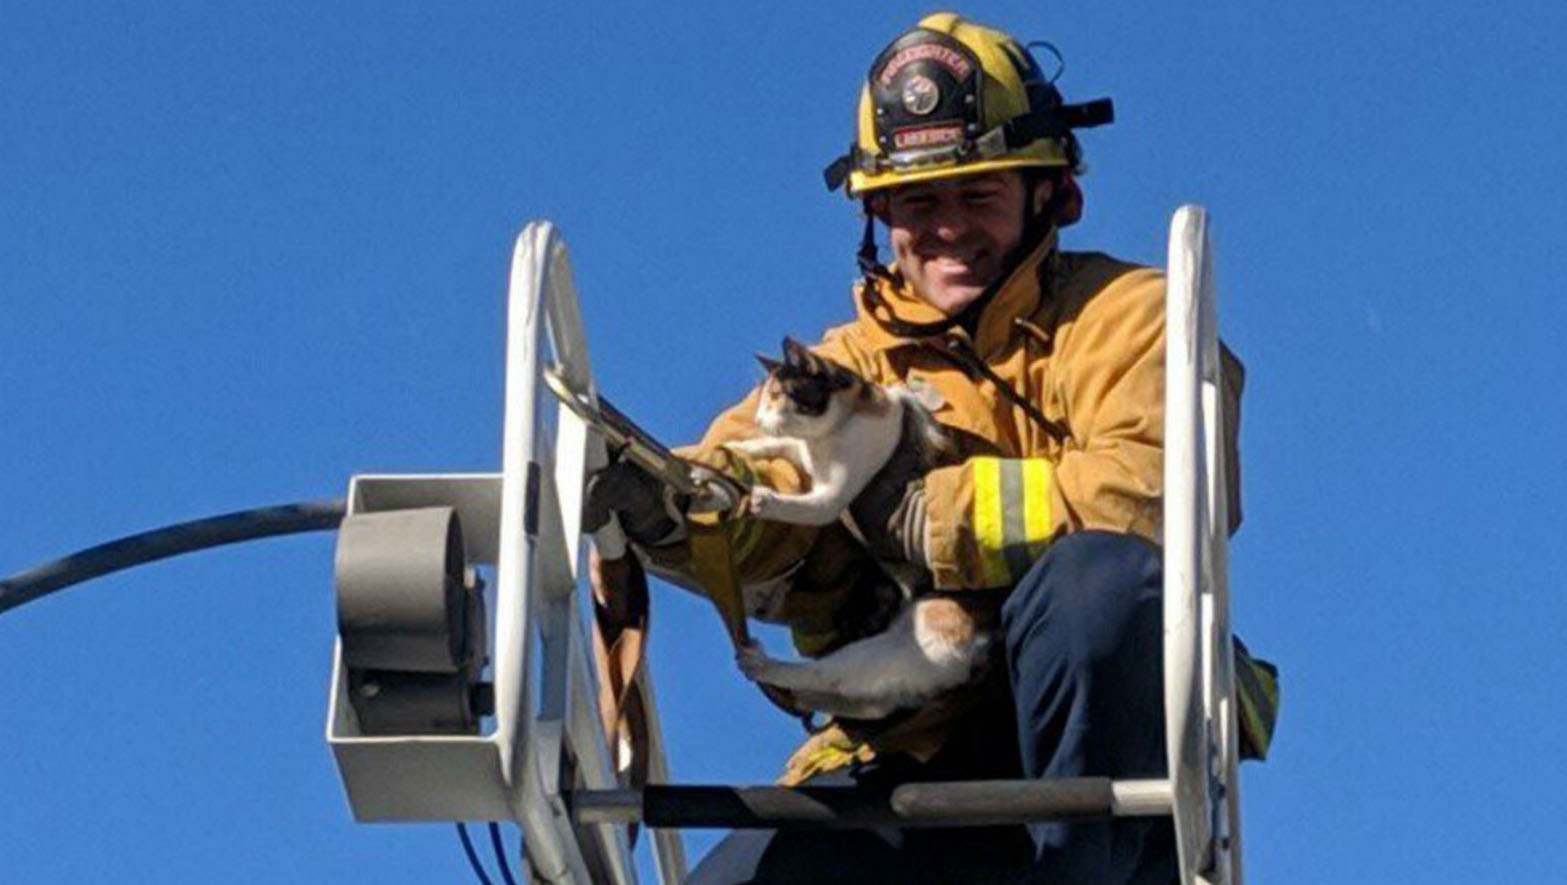 Firefighters Rescue Cat From Palm Tree